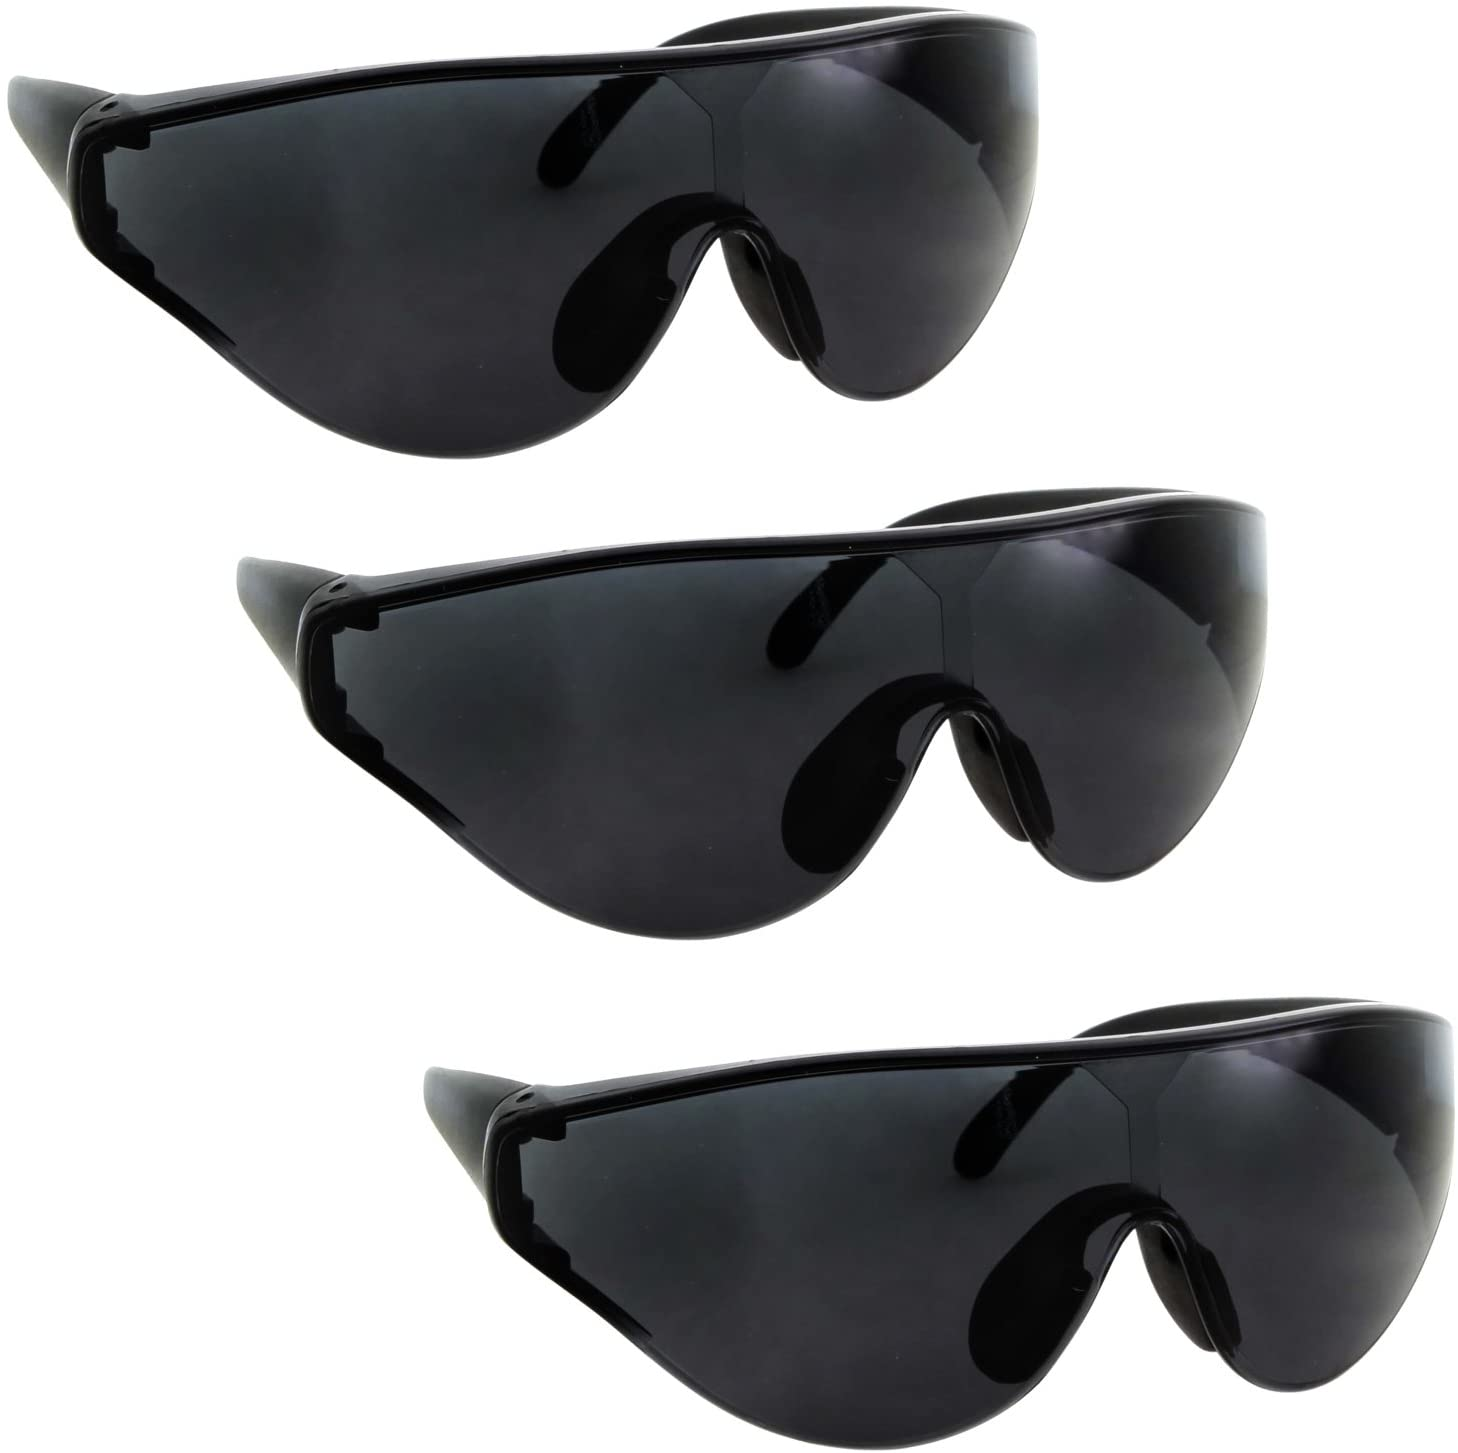 3 Pairs Bulk XL Large Wide Frame Safety & Shooting Glasses Tinted, Clear, Yellow Lens - Black 3 Pack